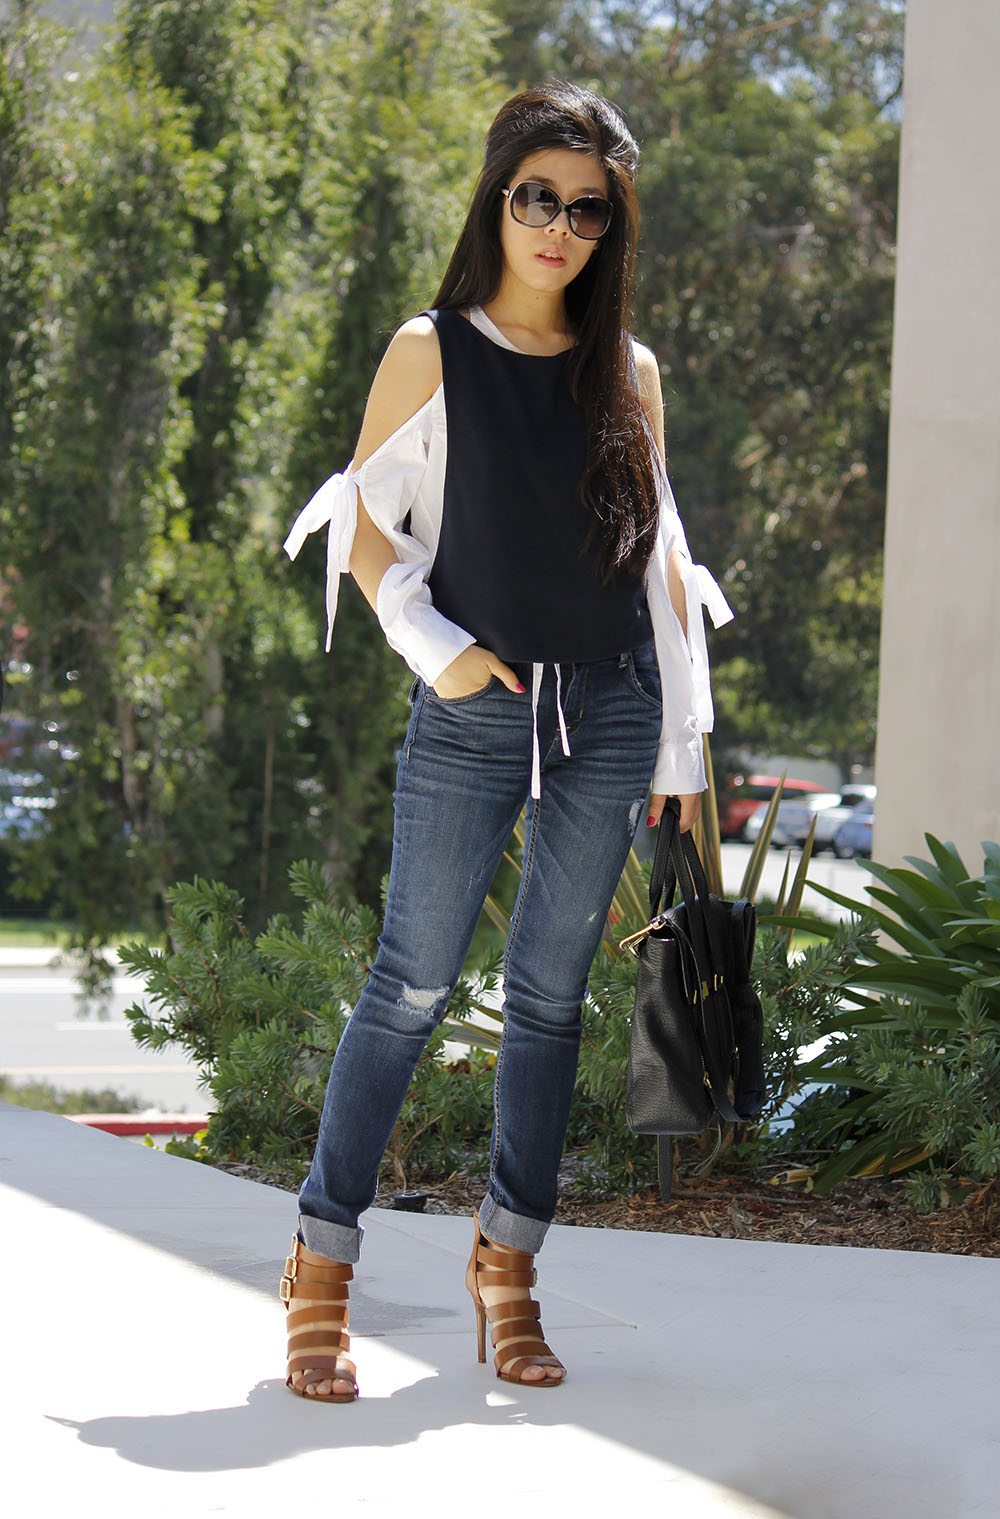 Adrienne Nguyen_Invictus_California Girl Style_Beach Fashion_West Coast Fashion